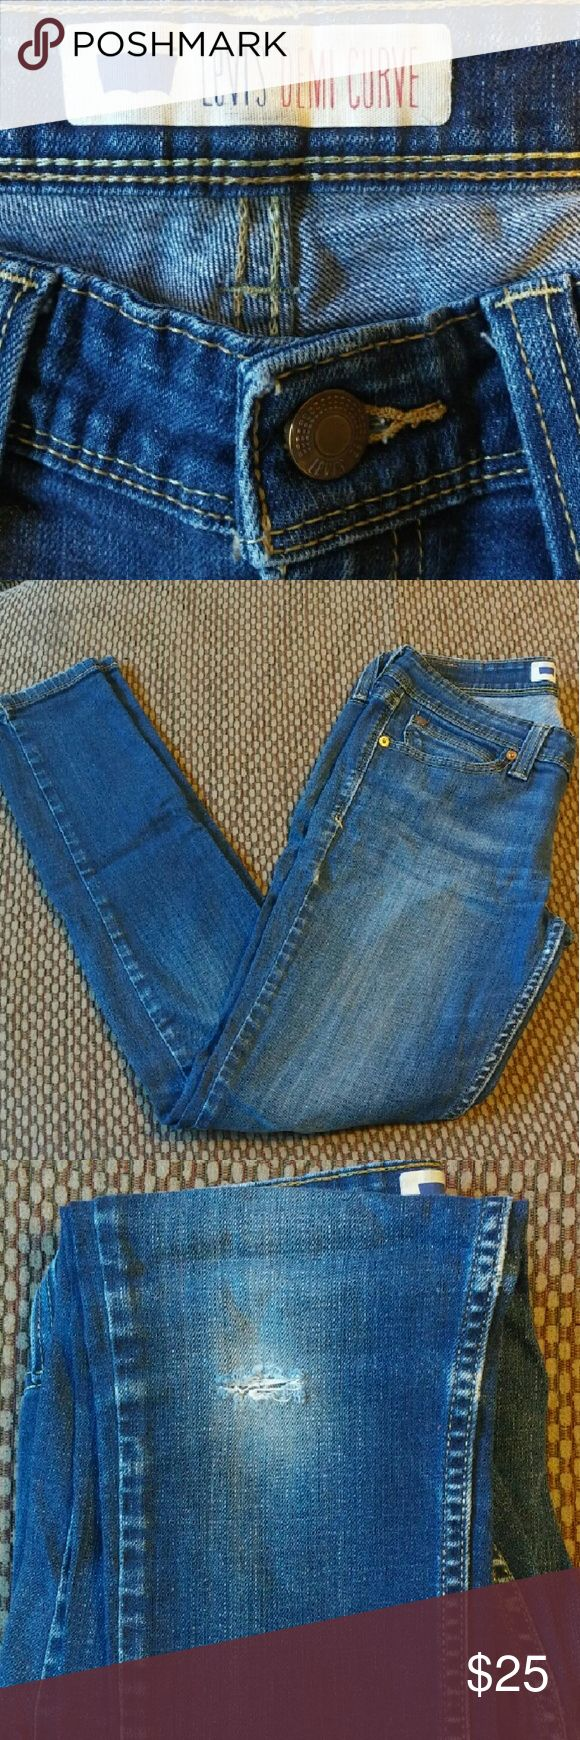 Levi DEMI CURVE Jeans Levi's DEMI CURVE Jeans size 7. These were very loved and they have a lot more love to give to their next owner! These have a knee tear on the right knee, but no other rips or tears elsewhere! These are a classic style jean and a style staple for your casual closet!  Make me an offer! I am negotiable! Levi's Jeans Skinny